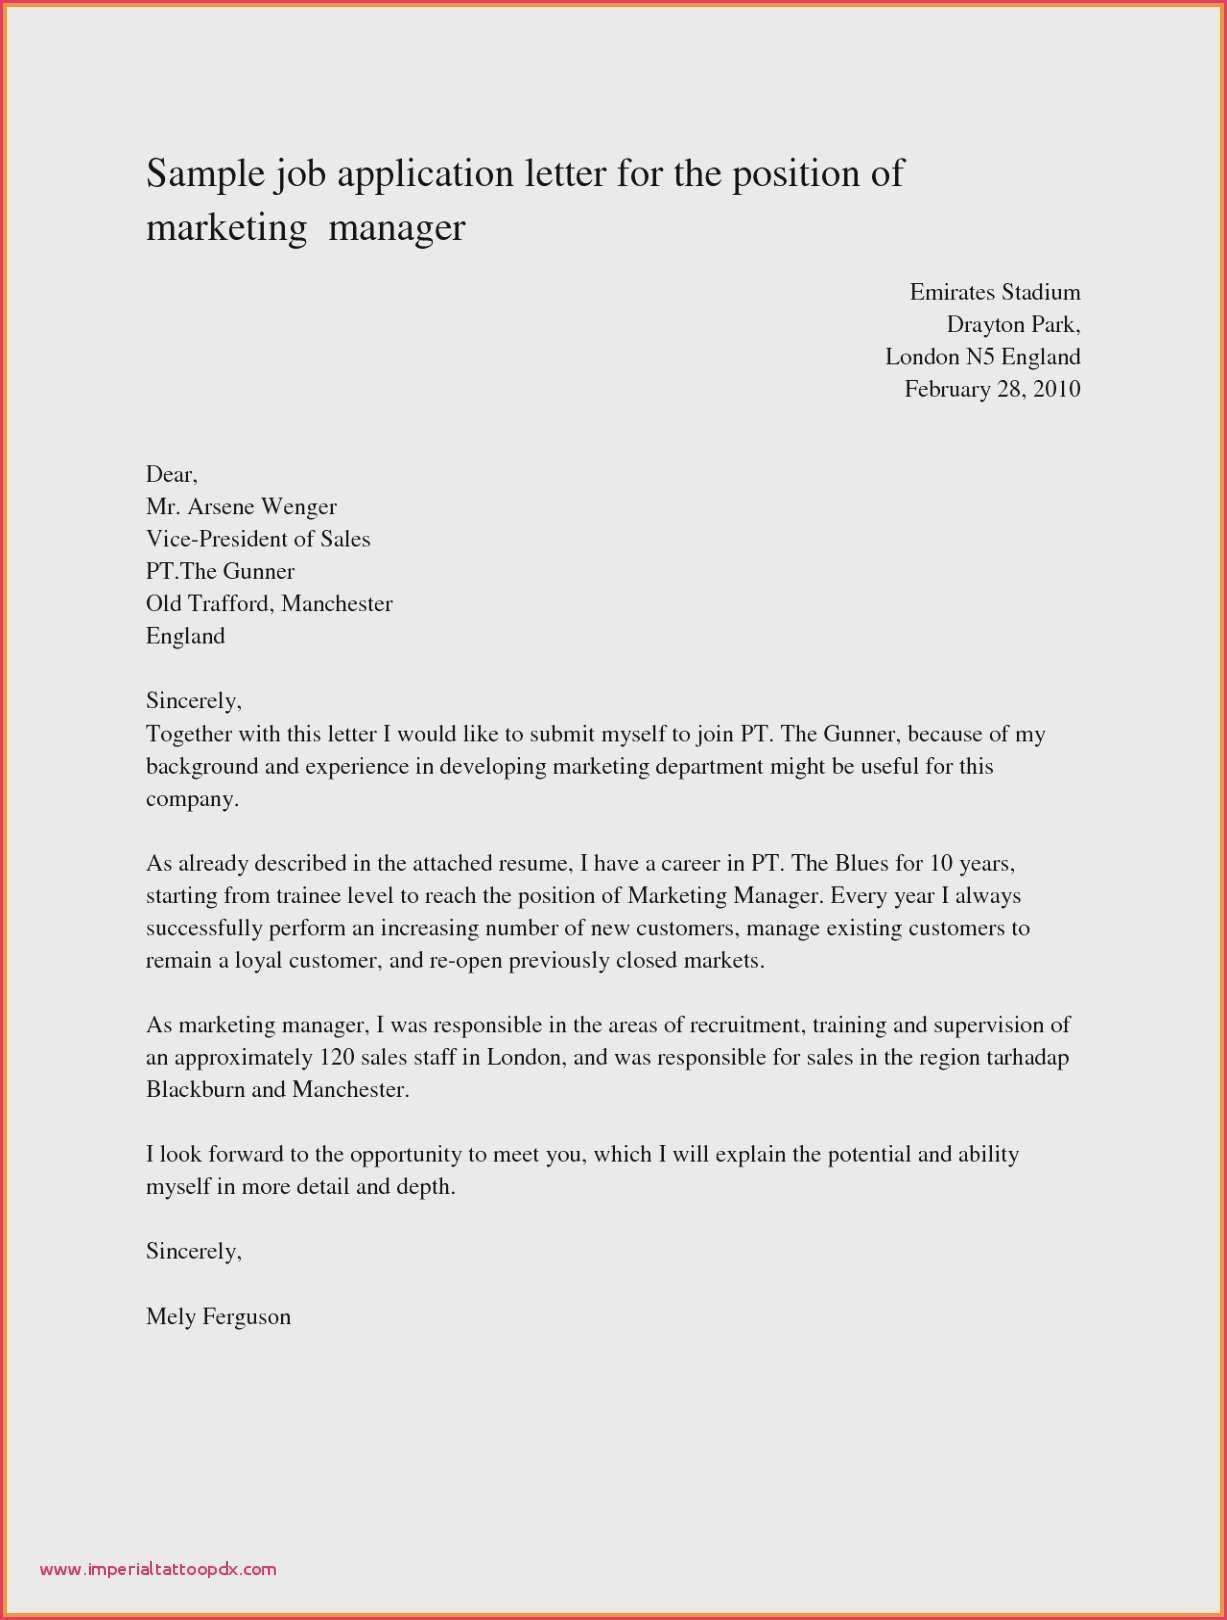 22 Templates For Business Letters Application Letters Job Cover